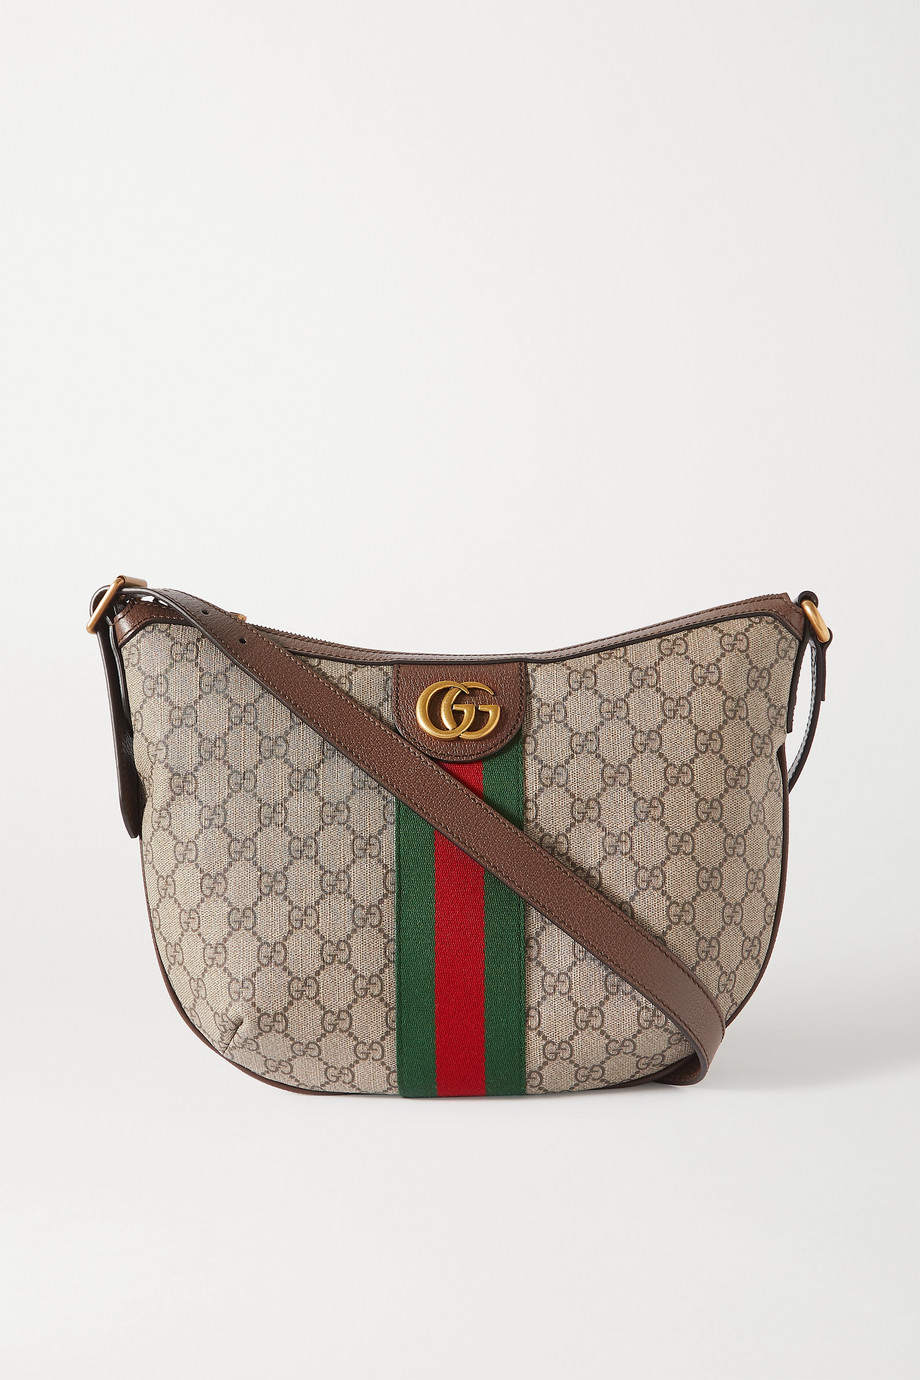 Gucci Ophidia textured-leather trimmed printed coated-canvas shoulder bag